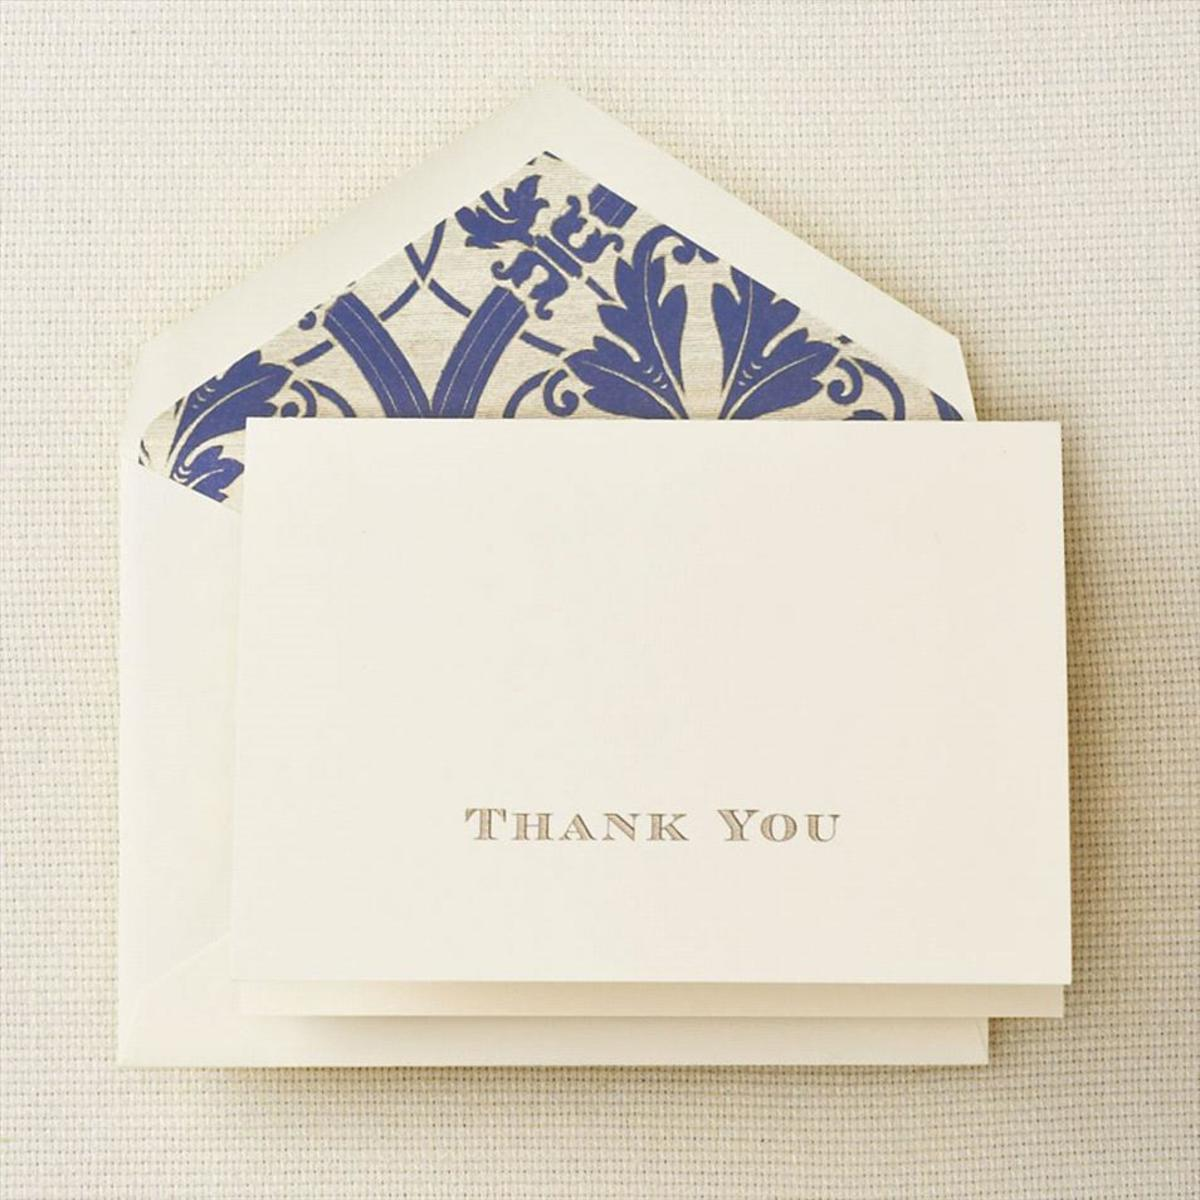 Receiving a thank you note on stationery that feels like fine, crisp linen, will make anyone's day brighter.